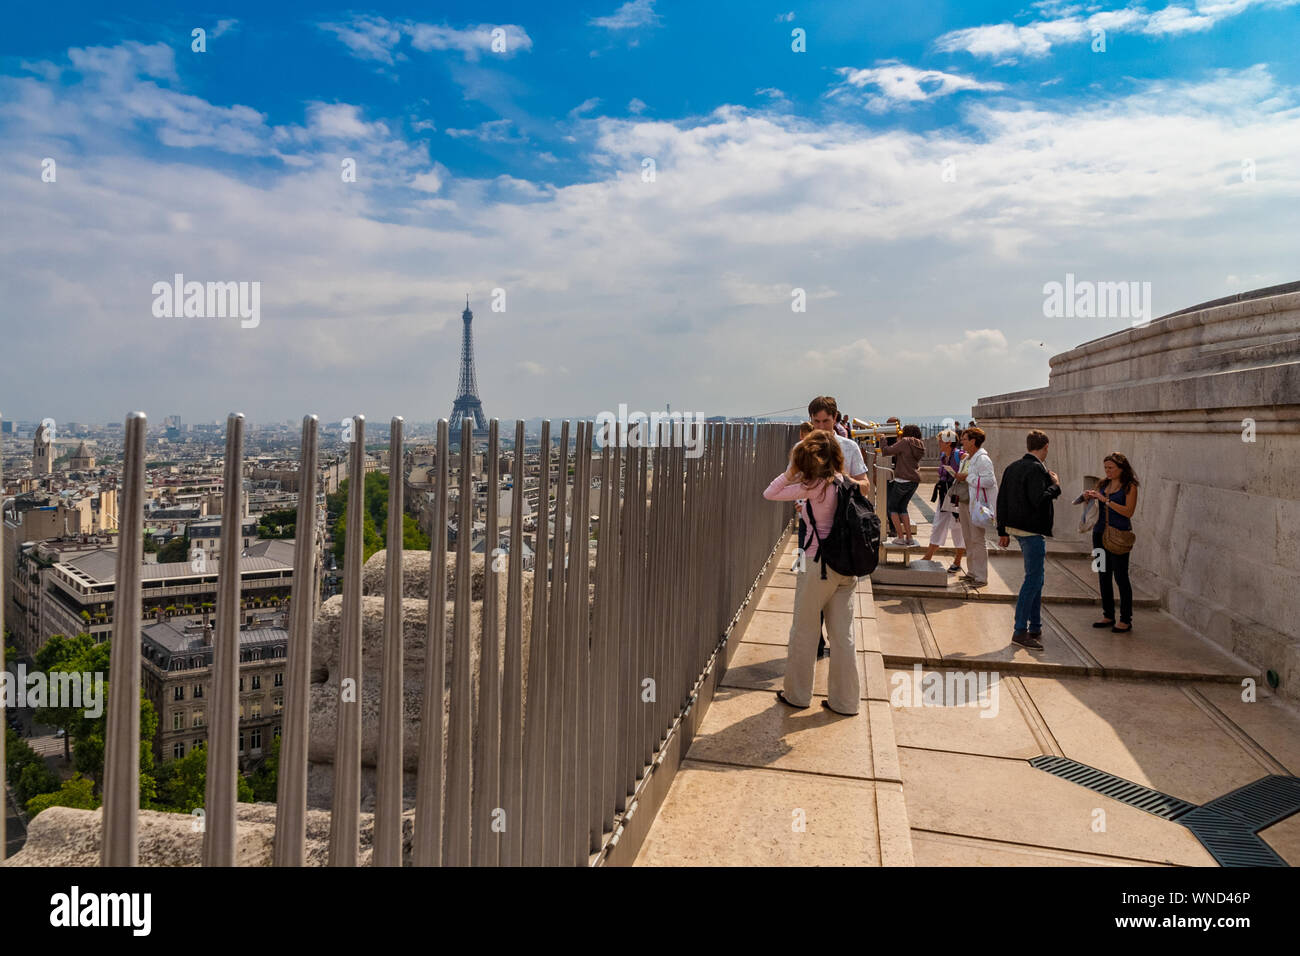 Secured by a metal fence, visitors are admiring the cityscape of Paris with the Eiffel Tower on the rooftop of the famous Arc de Triomphe on a nice... Stock Photo